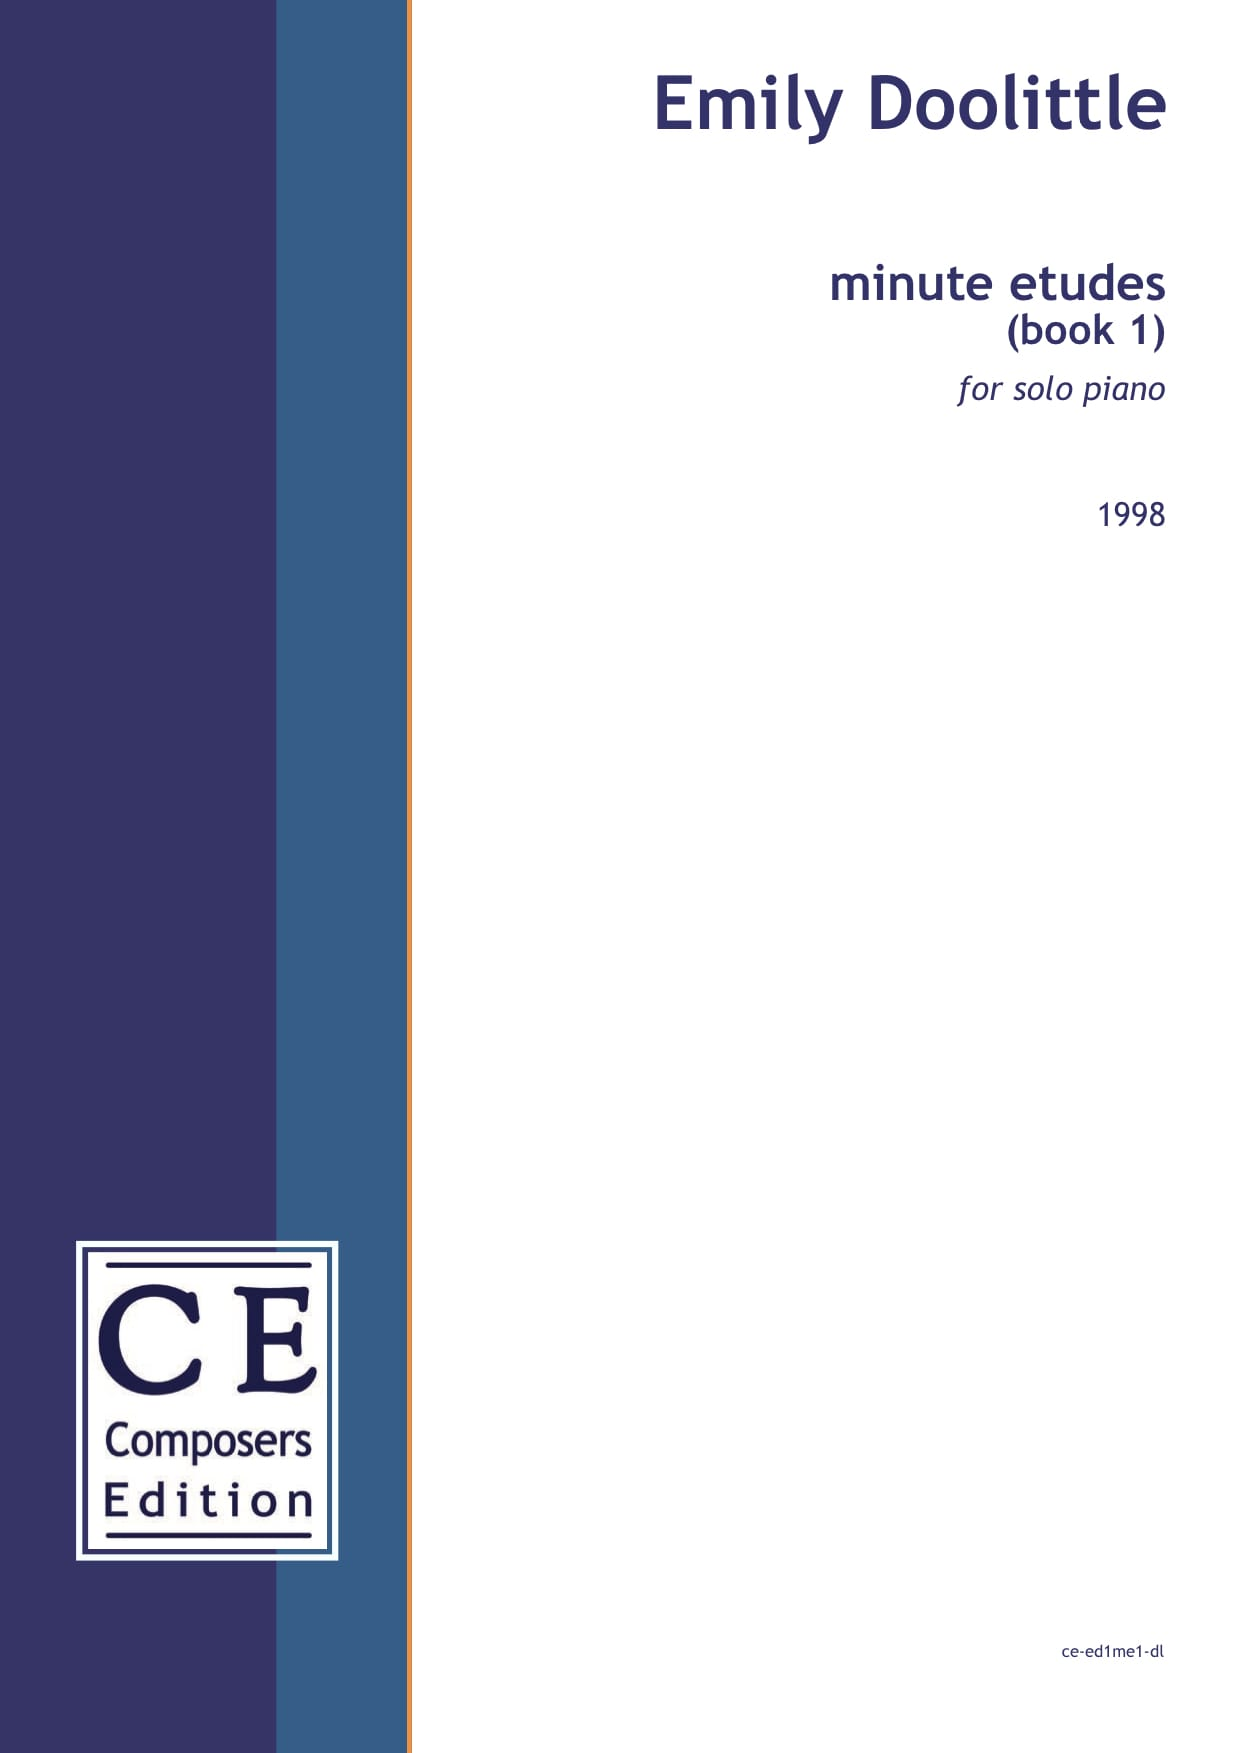 Emily Doolittle: minute etudes (book 1) for solo piano